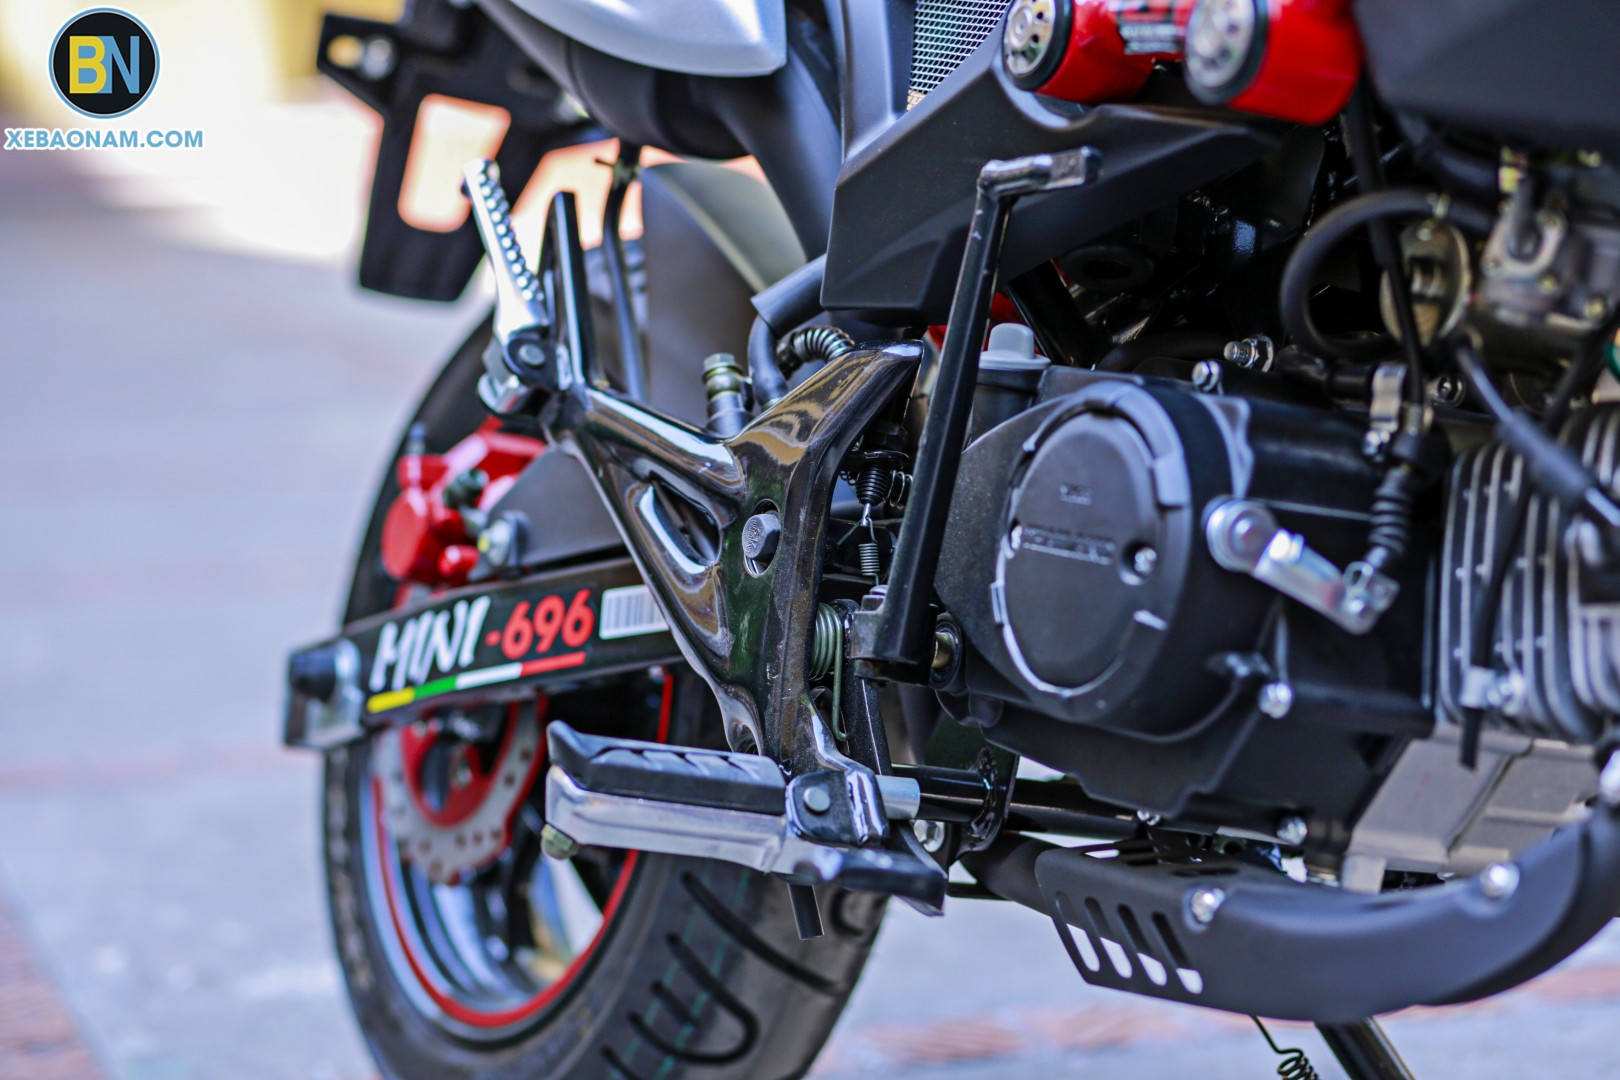 xe-may-ducati-mini-monster-110-xebaonam(15)